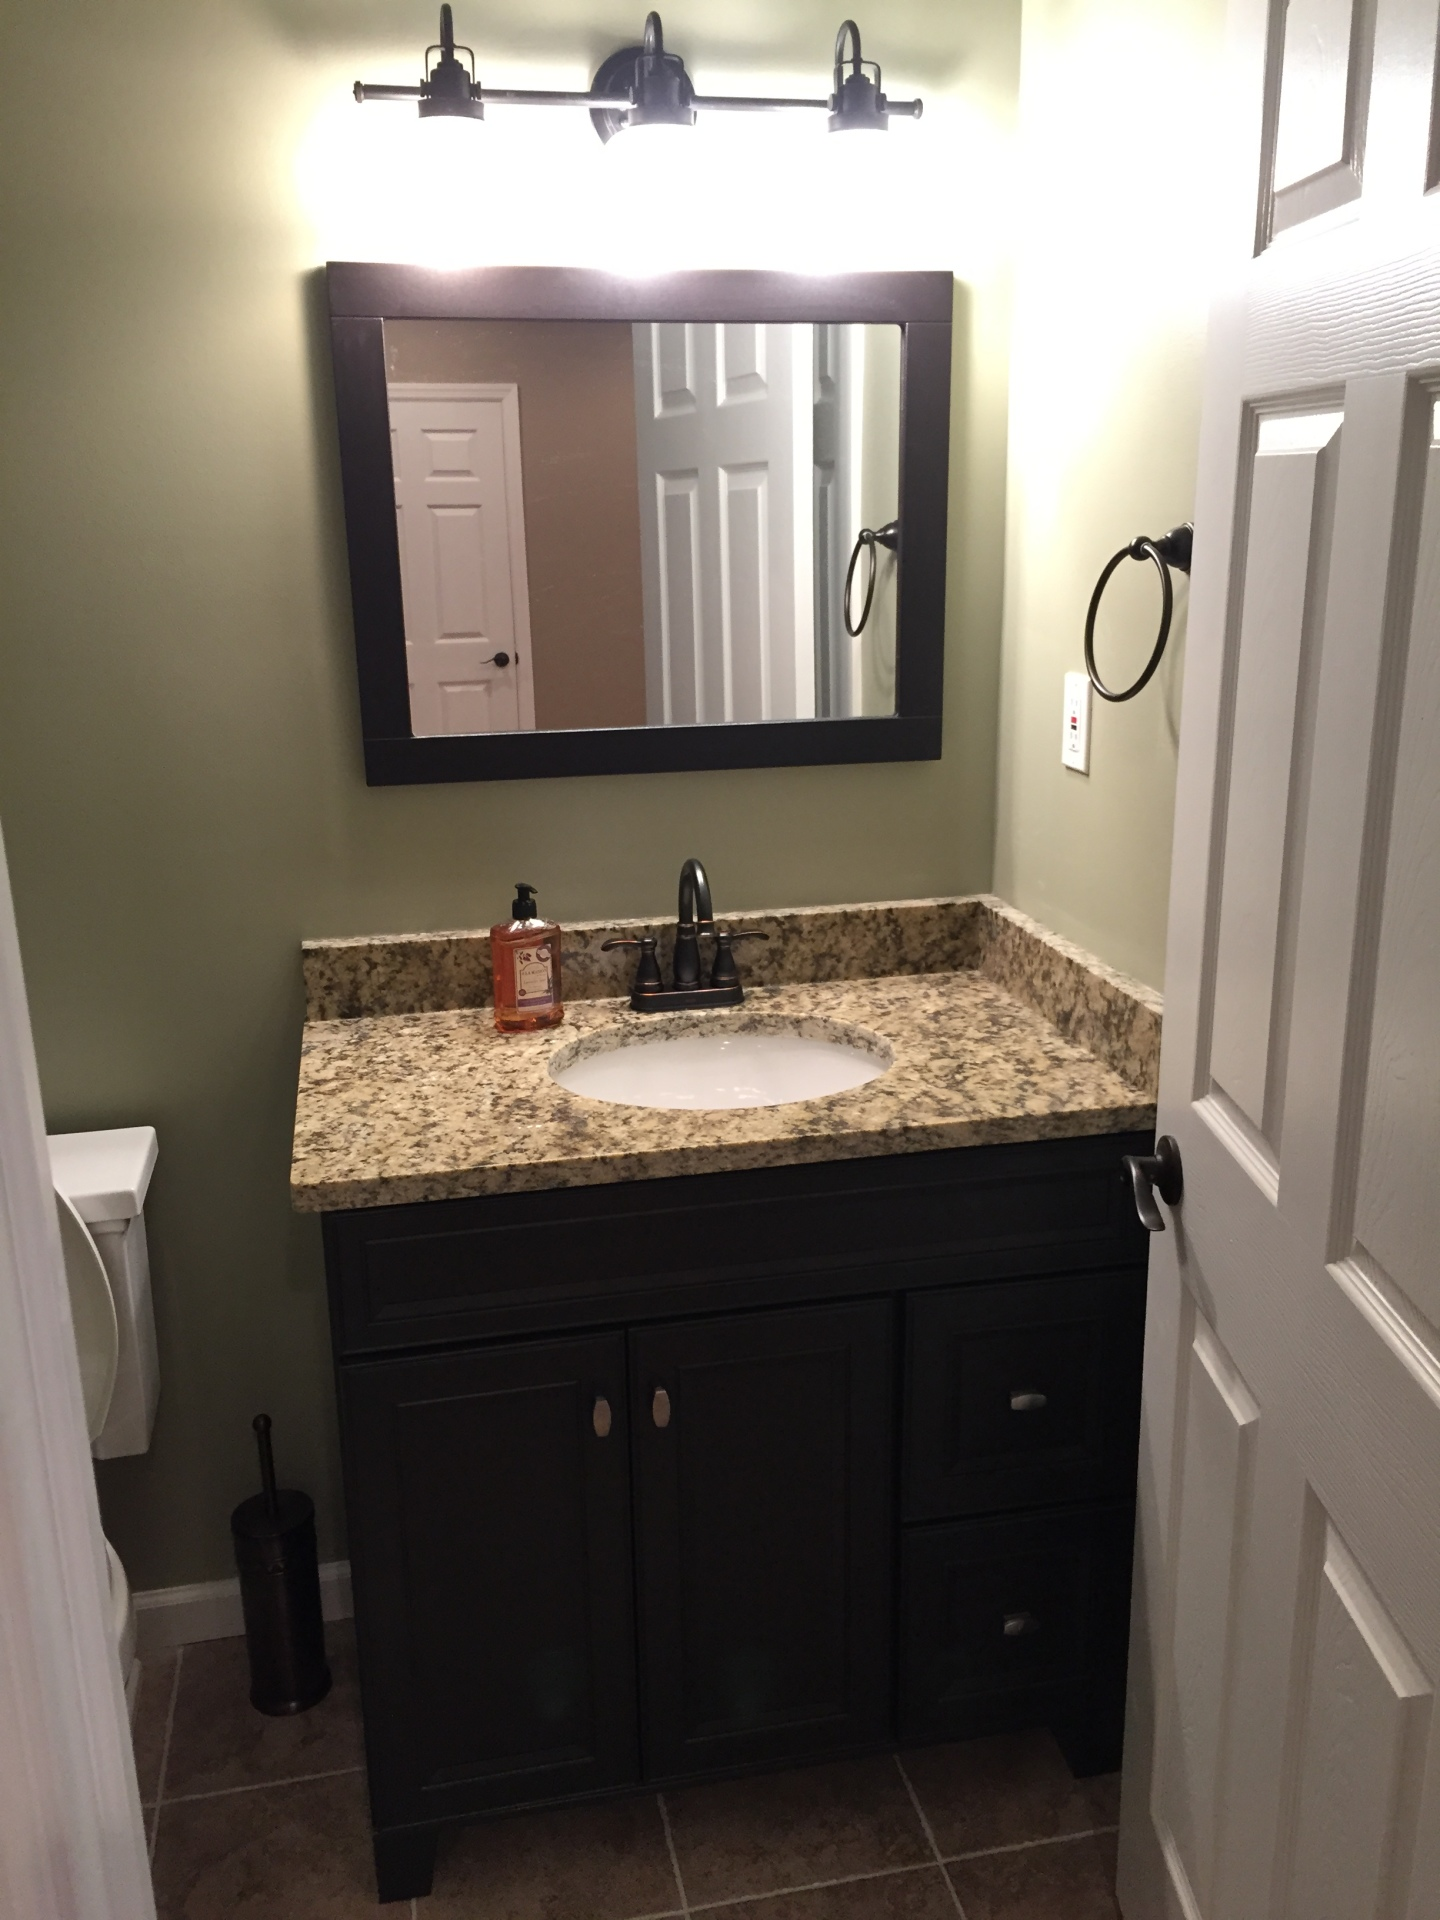 Basement bathroom vanity.